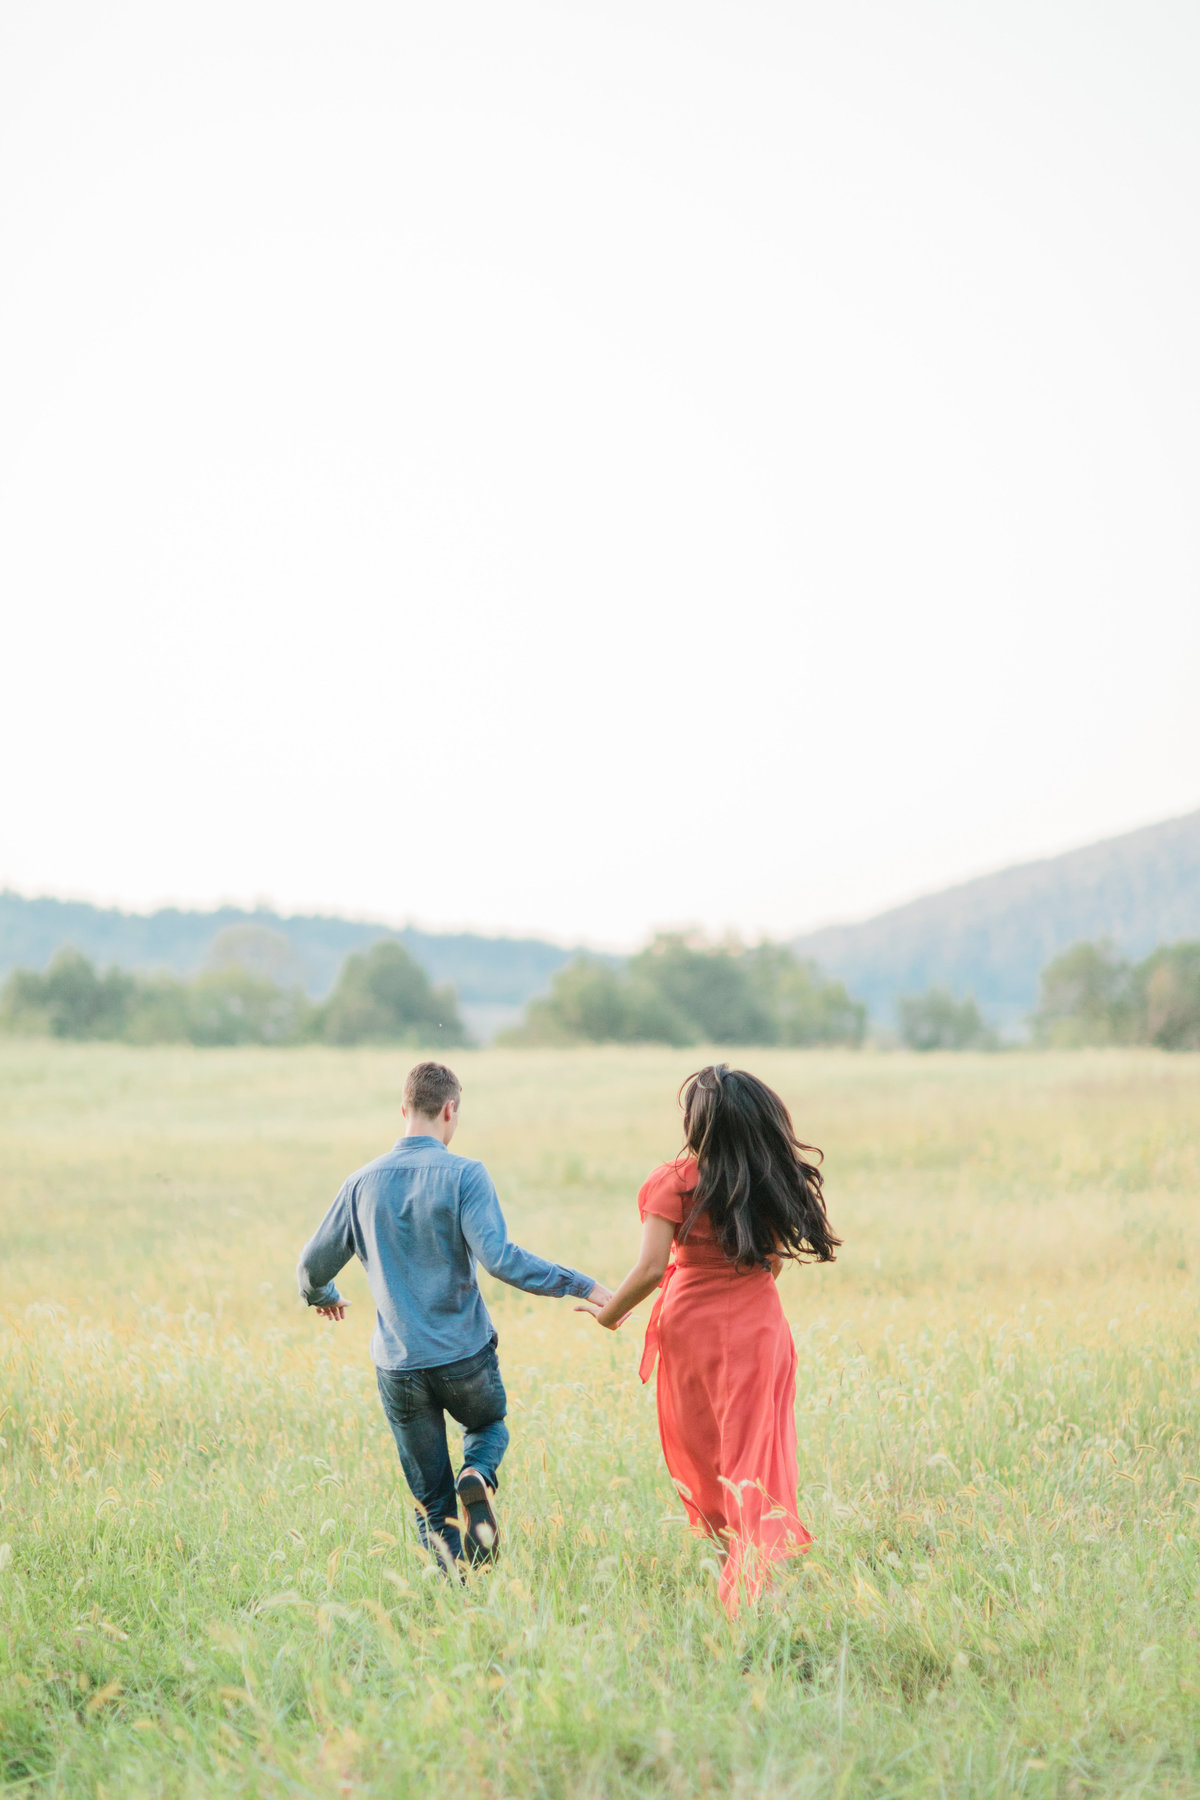 SkyMeadowsPark_Virginia_Engagement_Session_AngelikaJohnsPhotography-0428